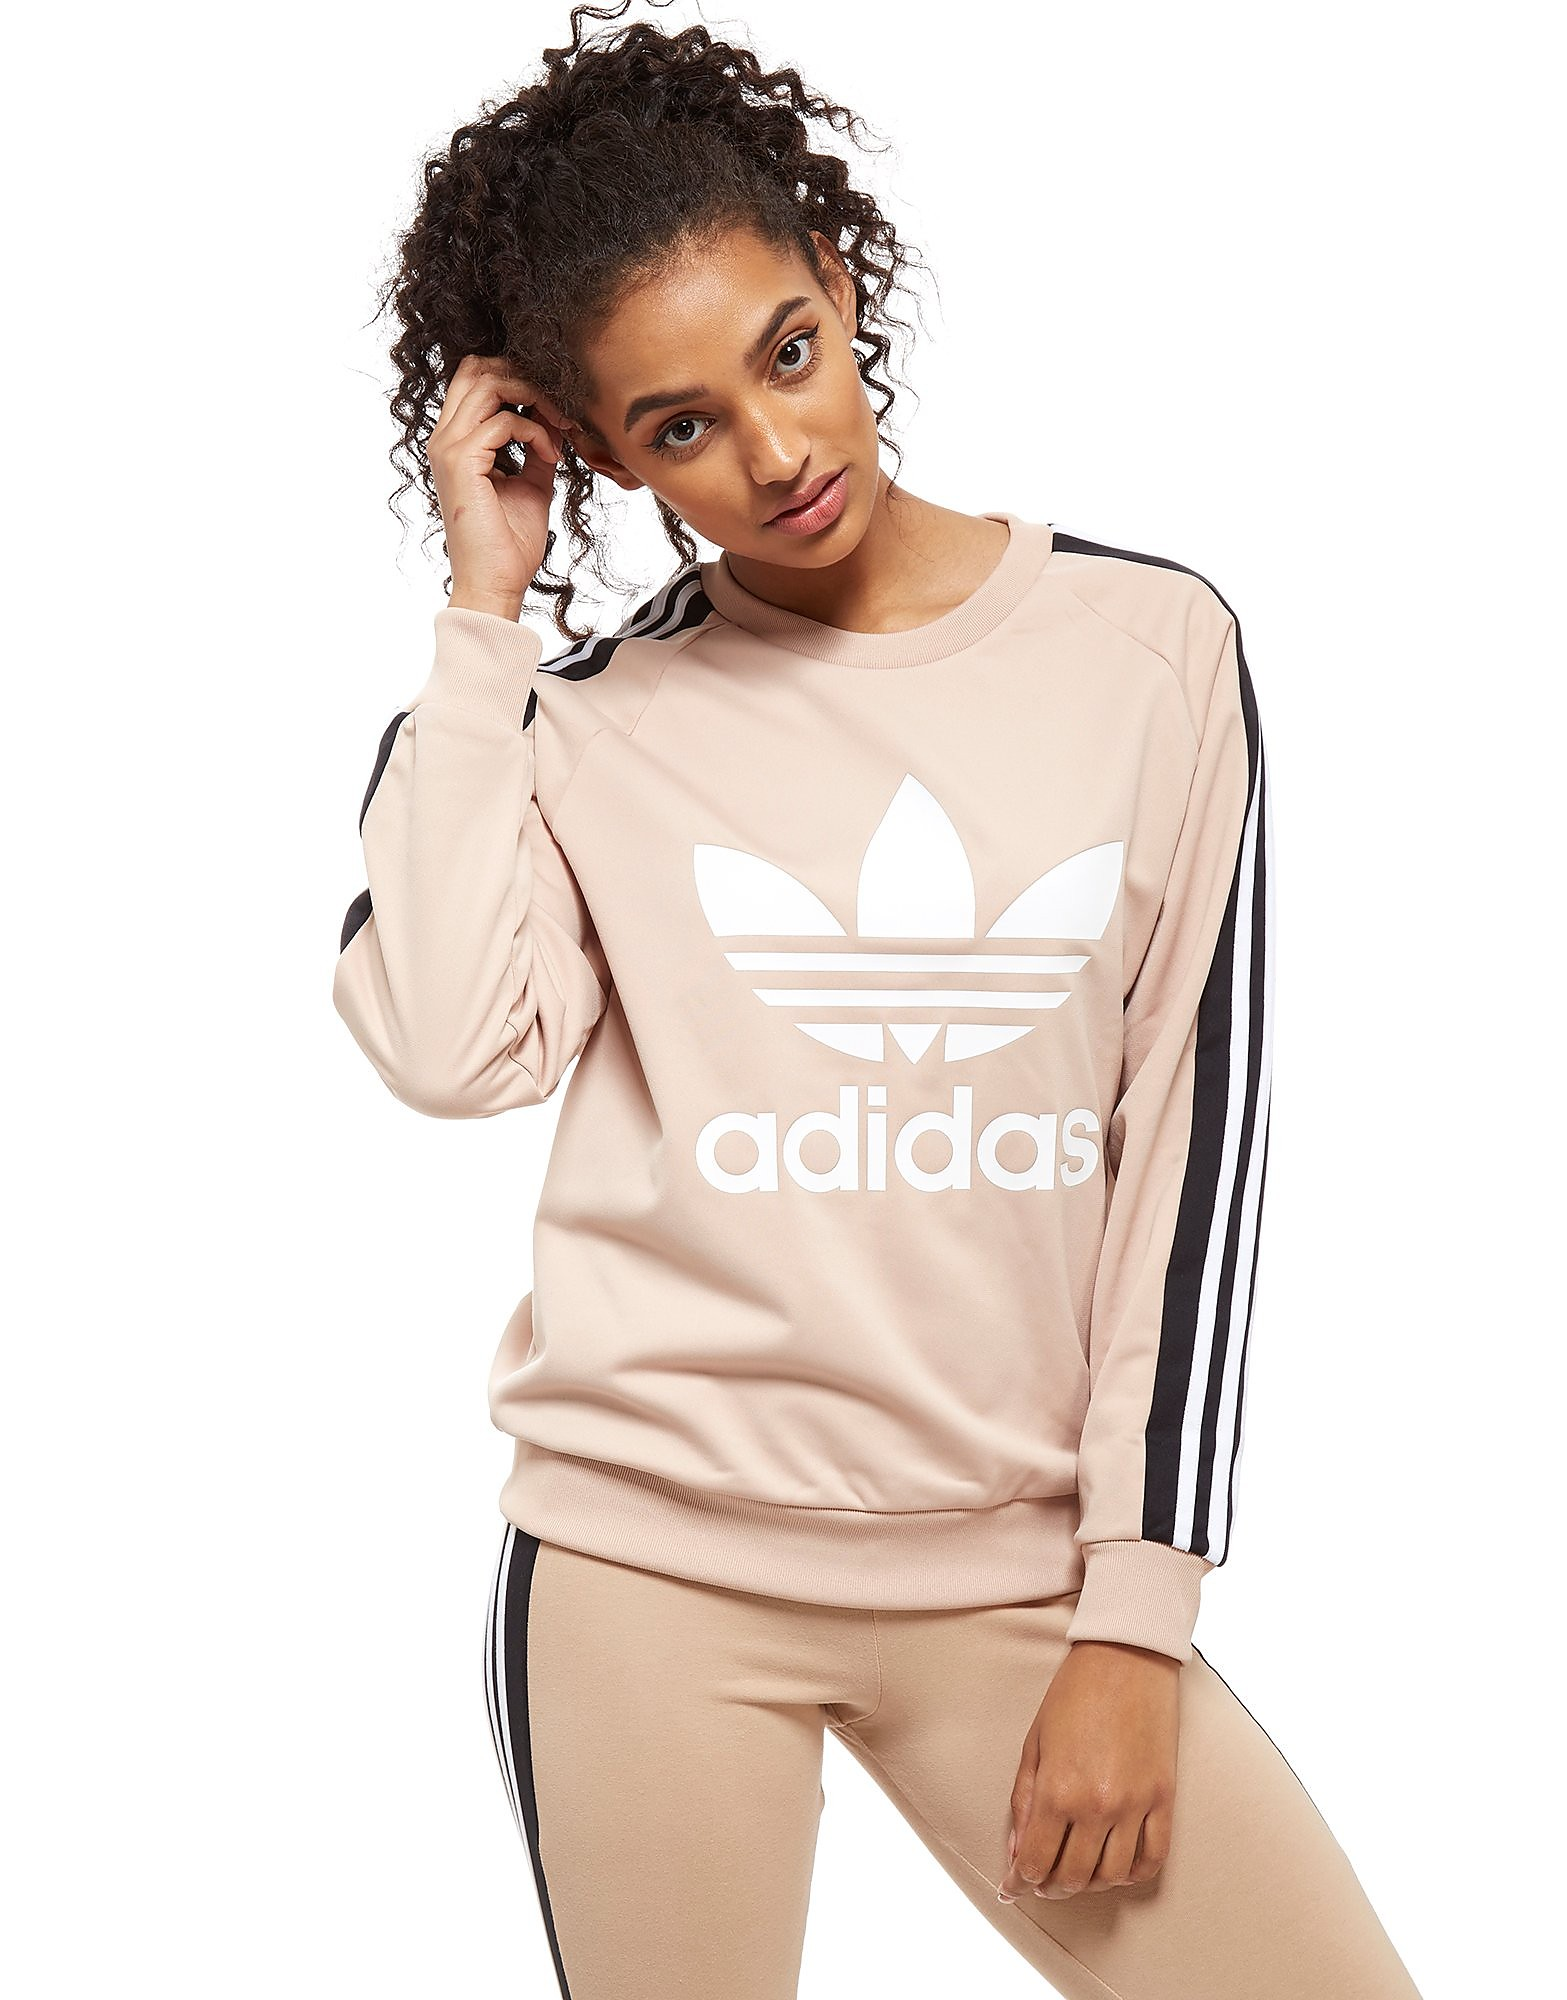 adidas Originals 3-Stripe Panel Crew Sweatshirt